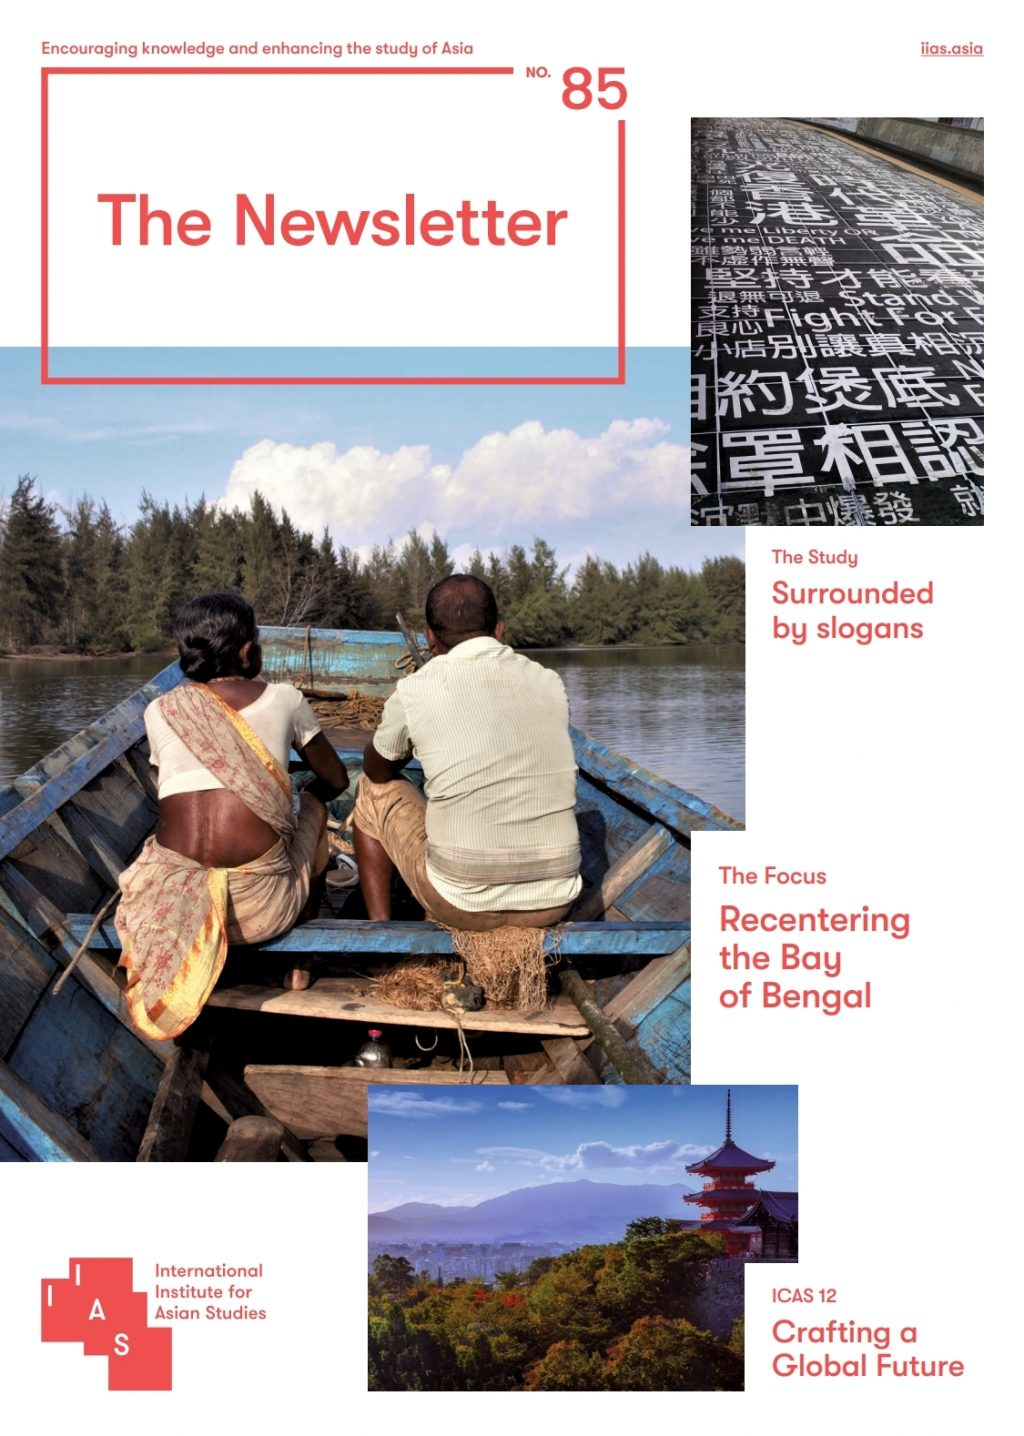 IIAS The Newsletter Vol. 85- News from Northeast Asia